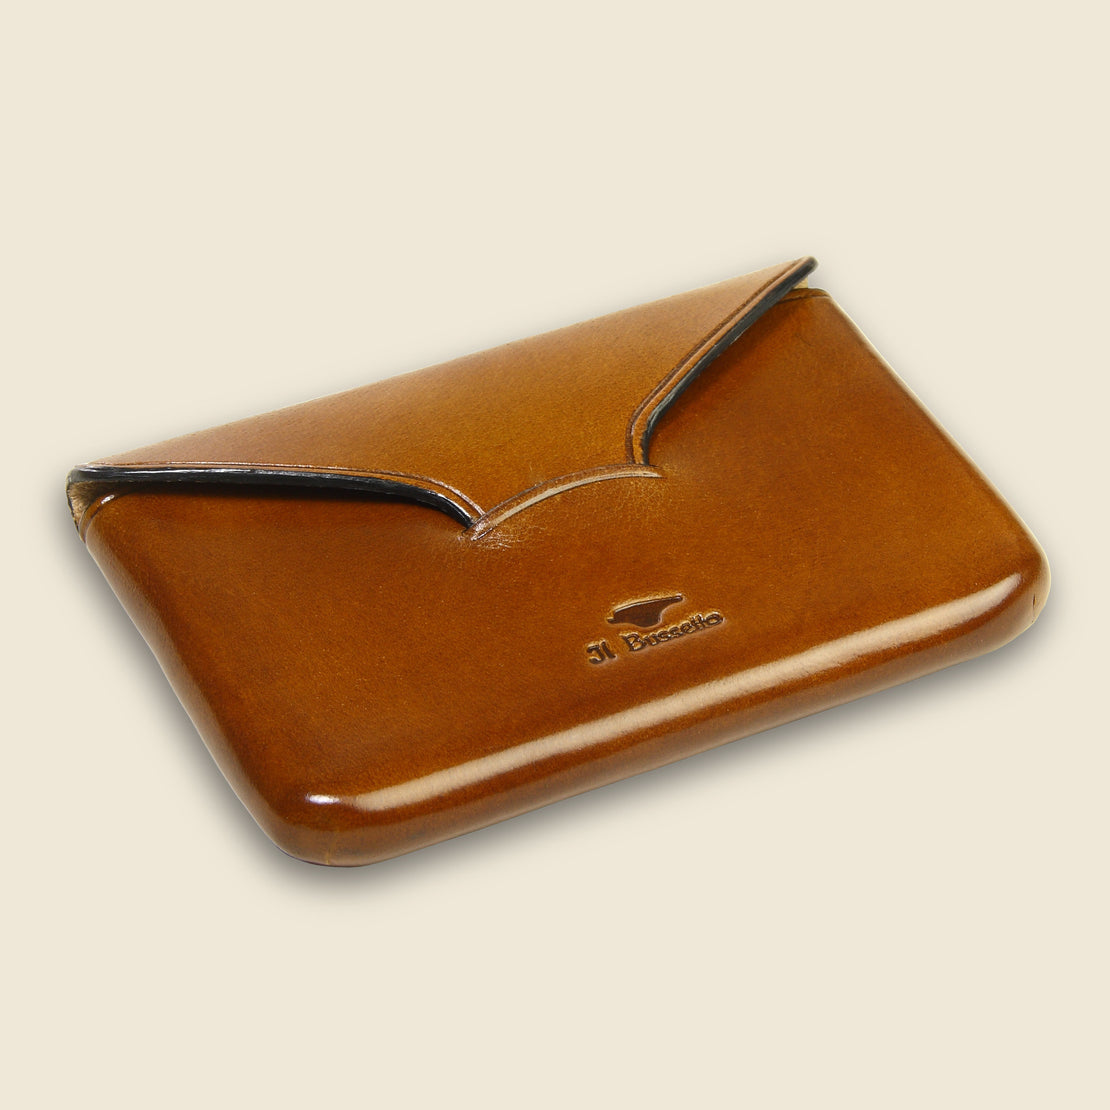 Business Card Holder - Light Brown - Il Bussetto - STAG Provisions - Accessories - Wallets